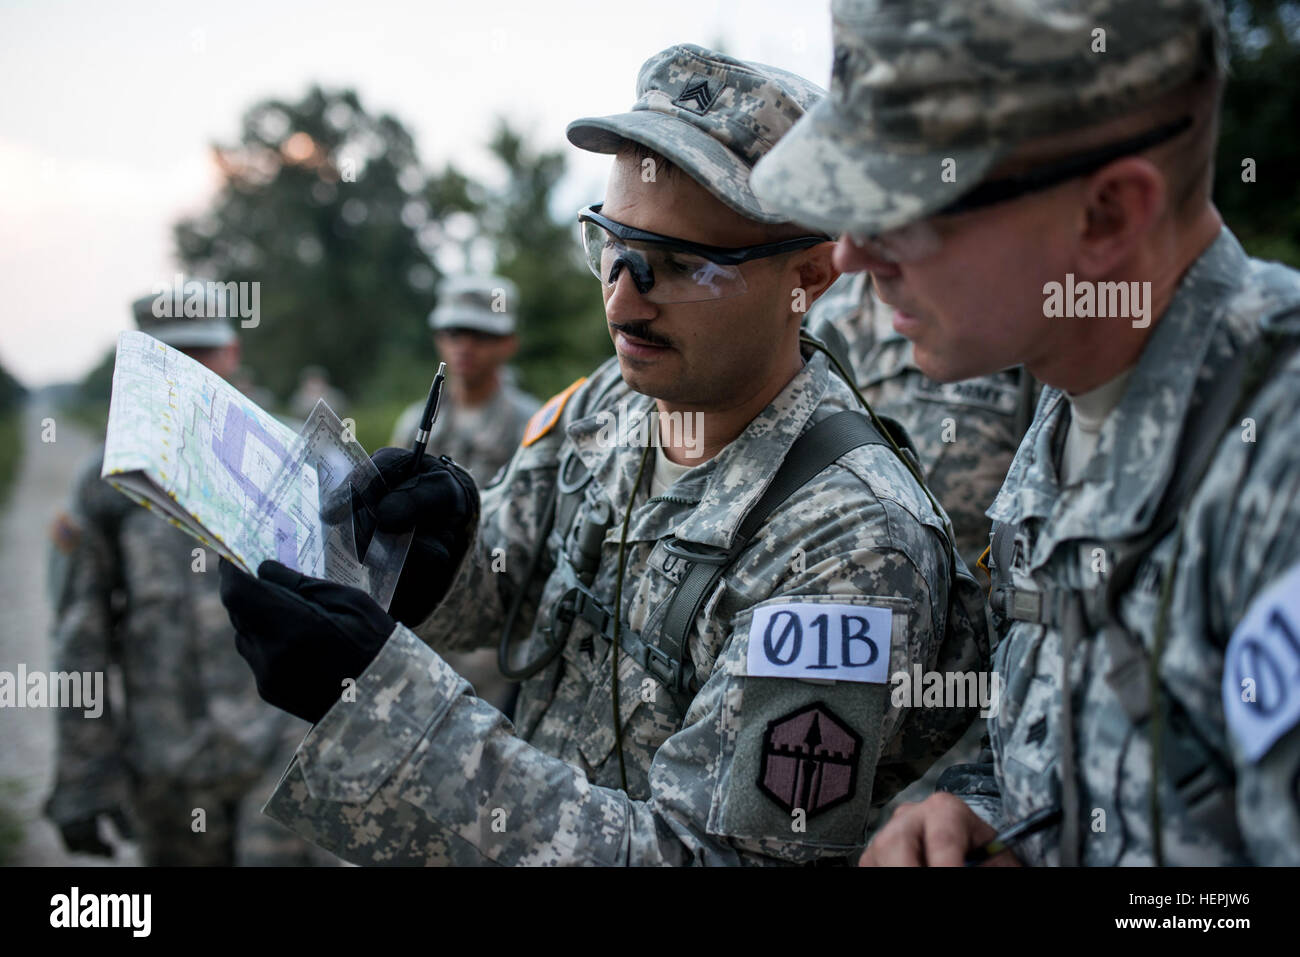 https://c8.alamy.com/comp/HEPJW6/sgt-christian-r-sanchez-reviews-grid-coordinates-with-sgt-brett-carpenter-HEPJW6.jpg